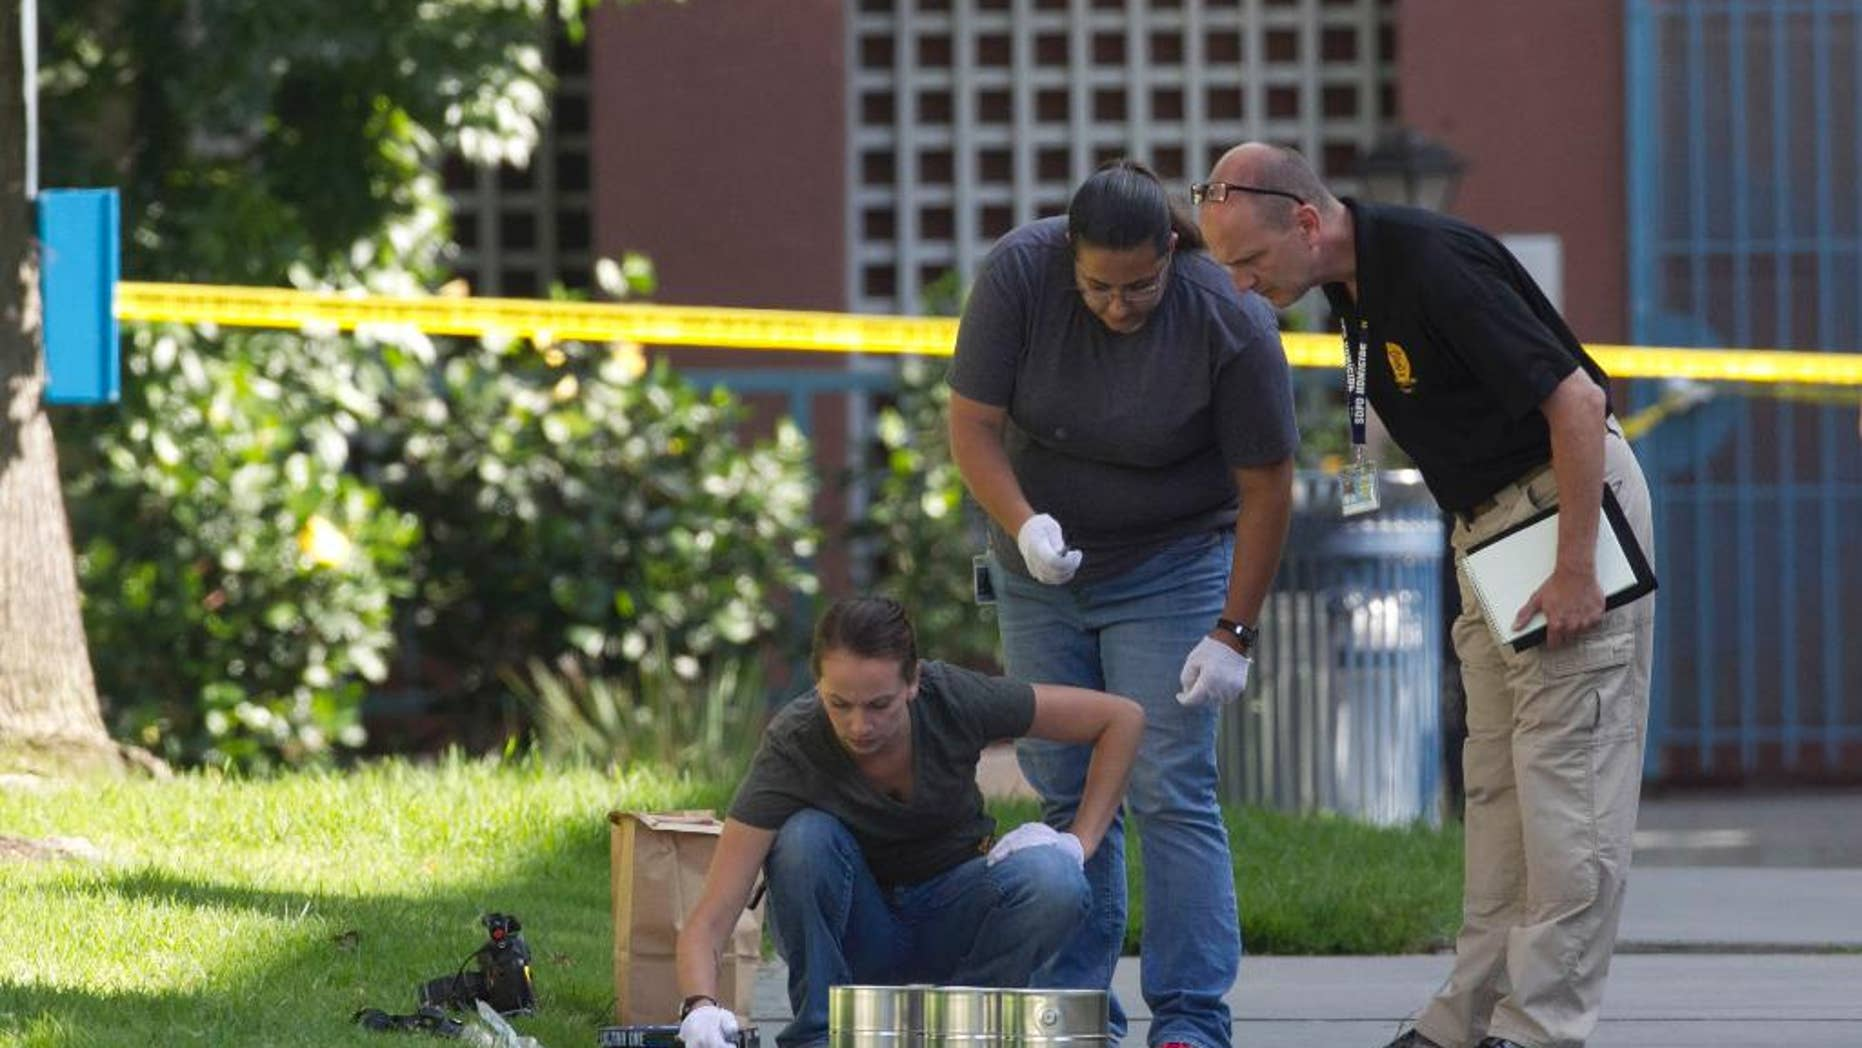 San Diego's Metro Arson Strike Team and SDPD homicide team on July 6 gathering evidence from the sidewalk and grassy area where a homeless person was attacked.